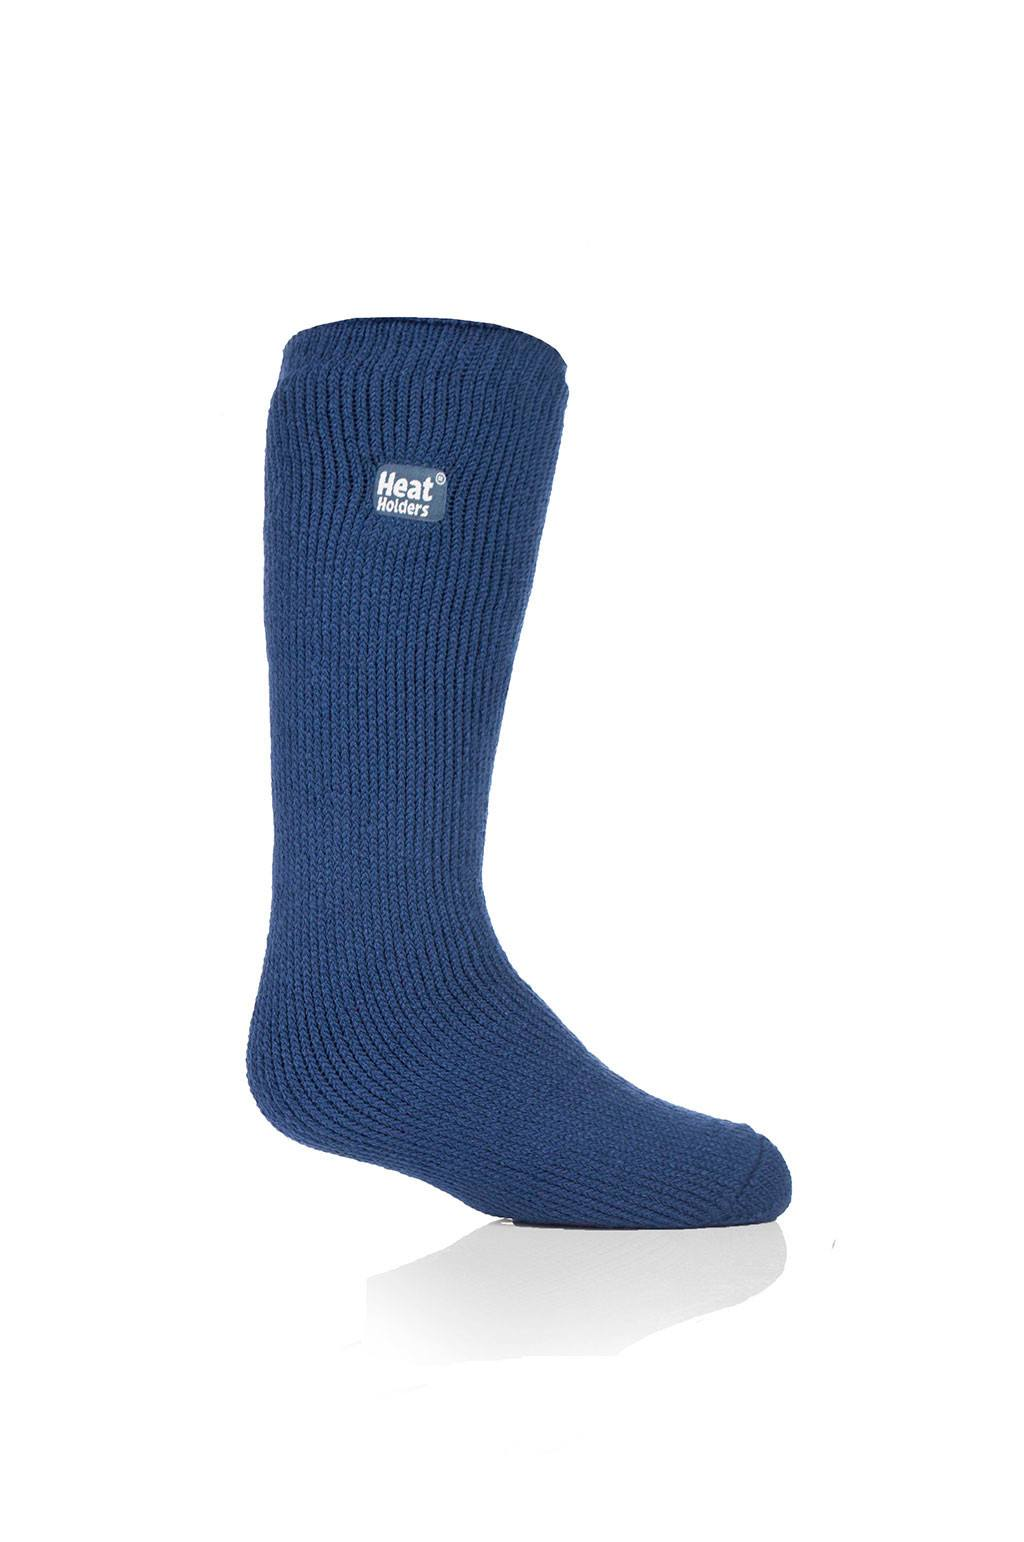 Younger Children Socks in Indigo